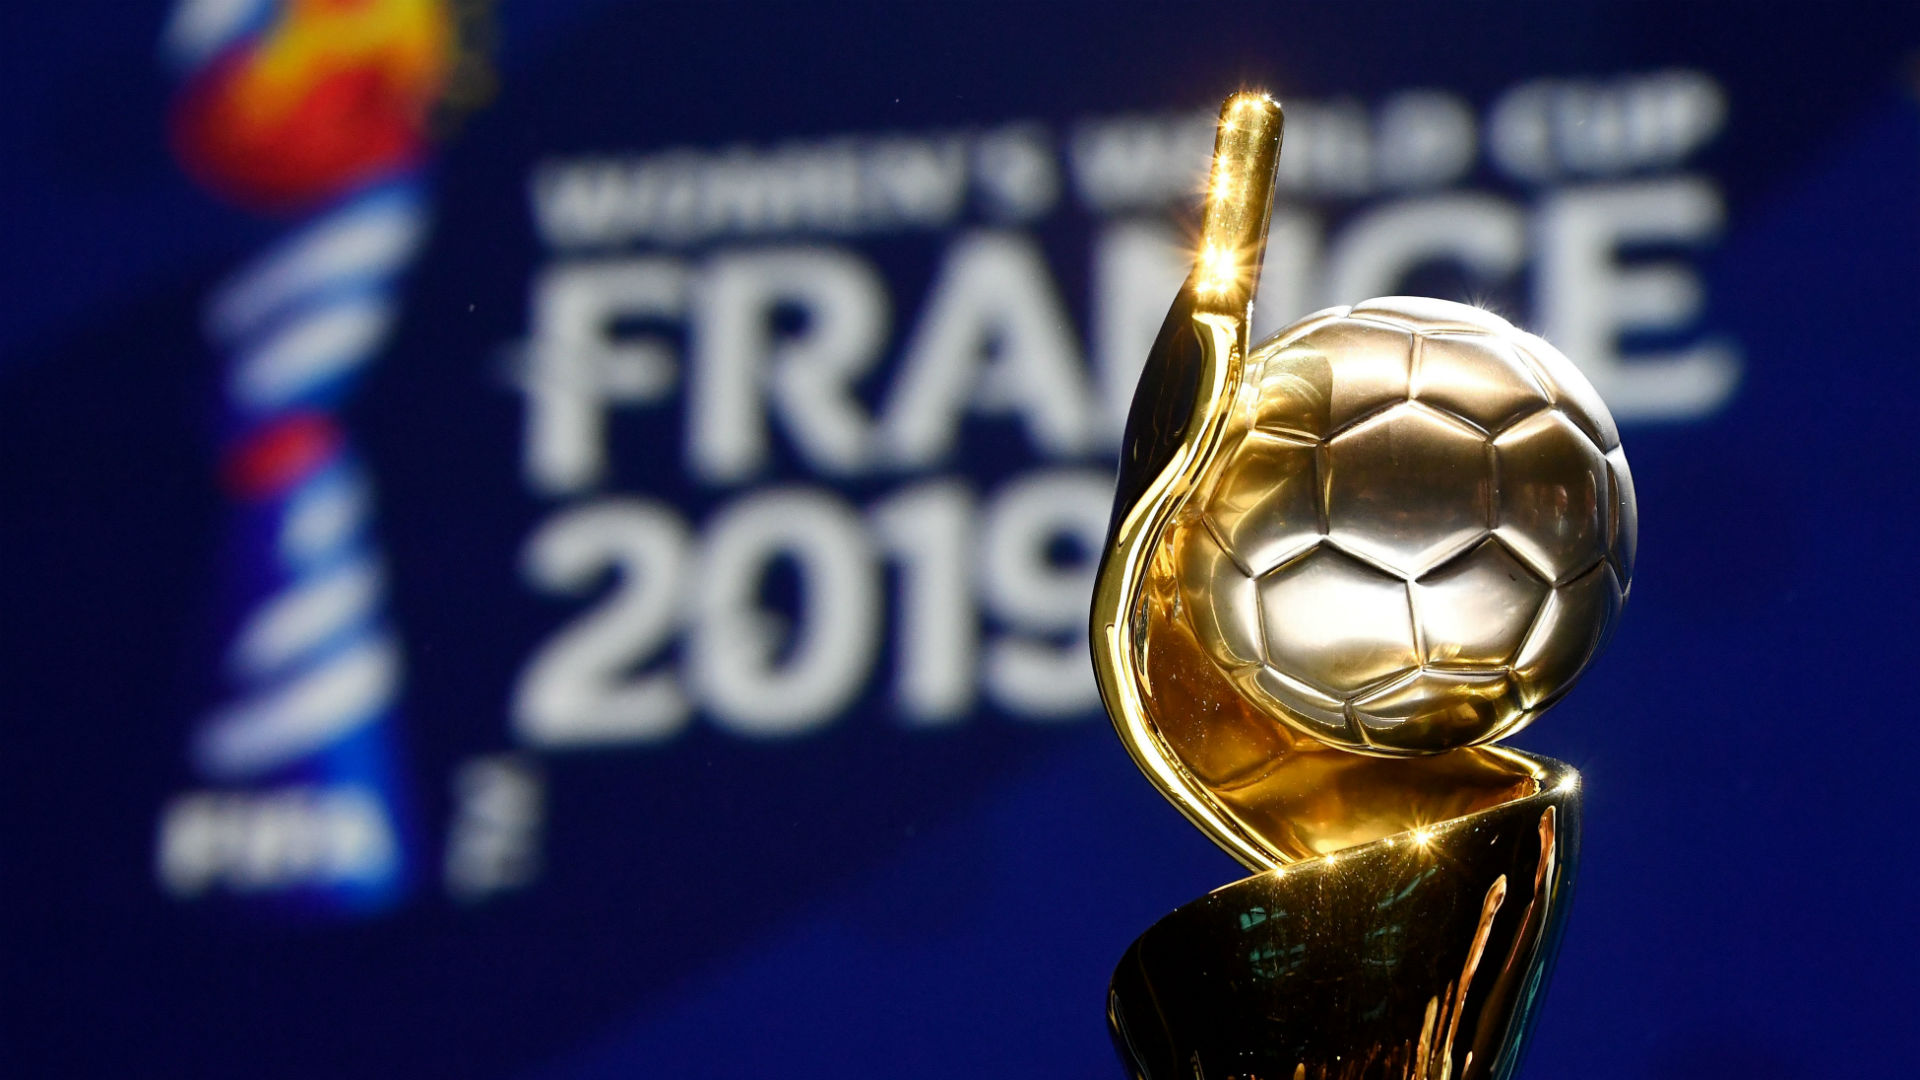 Women's World Cup 2019: Everything you need to know